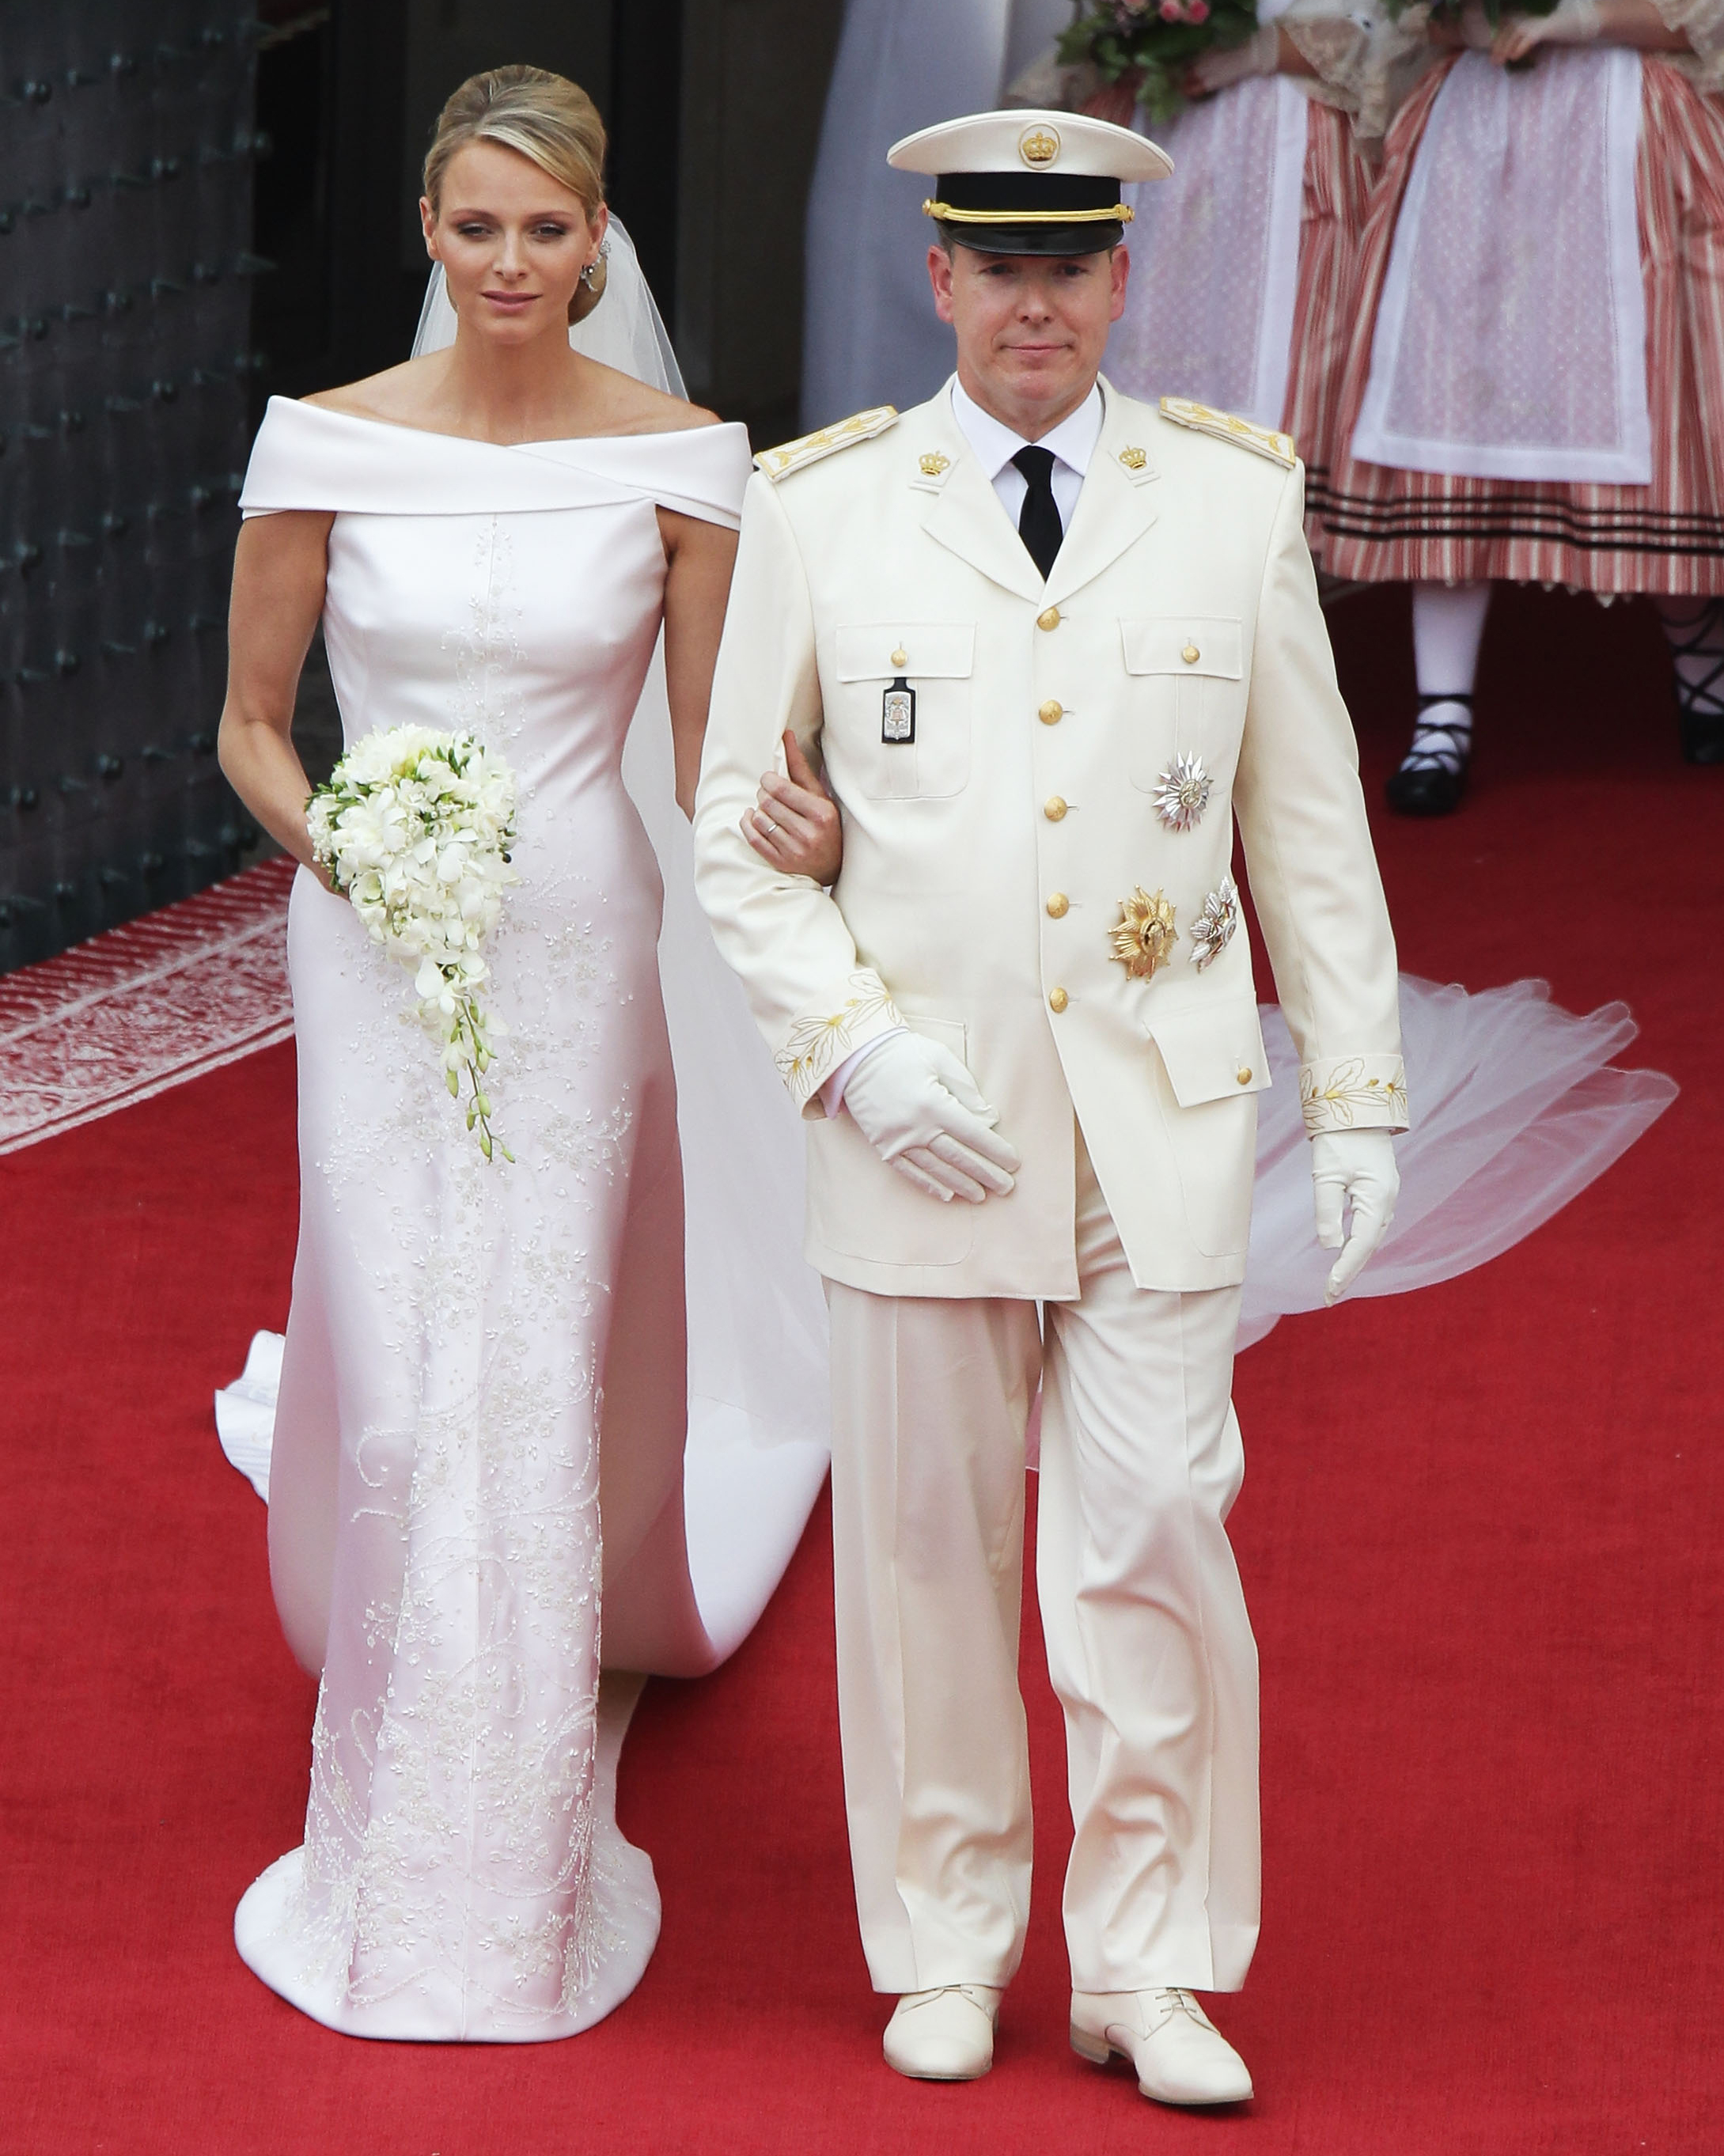 royal-wedding-dress-charlene-wittstock-monaco-117975332-1115.jpg